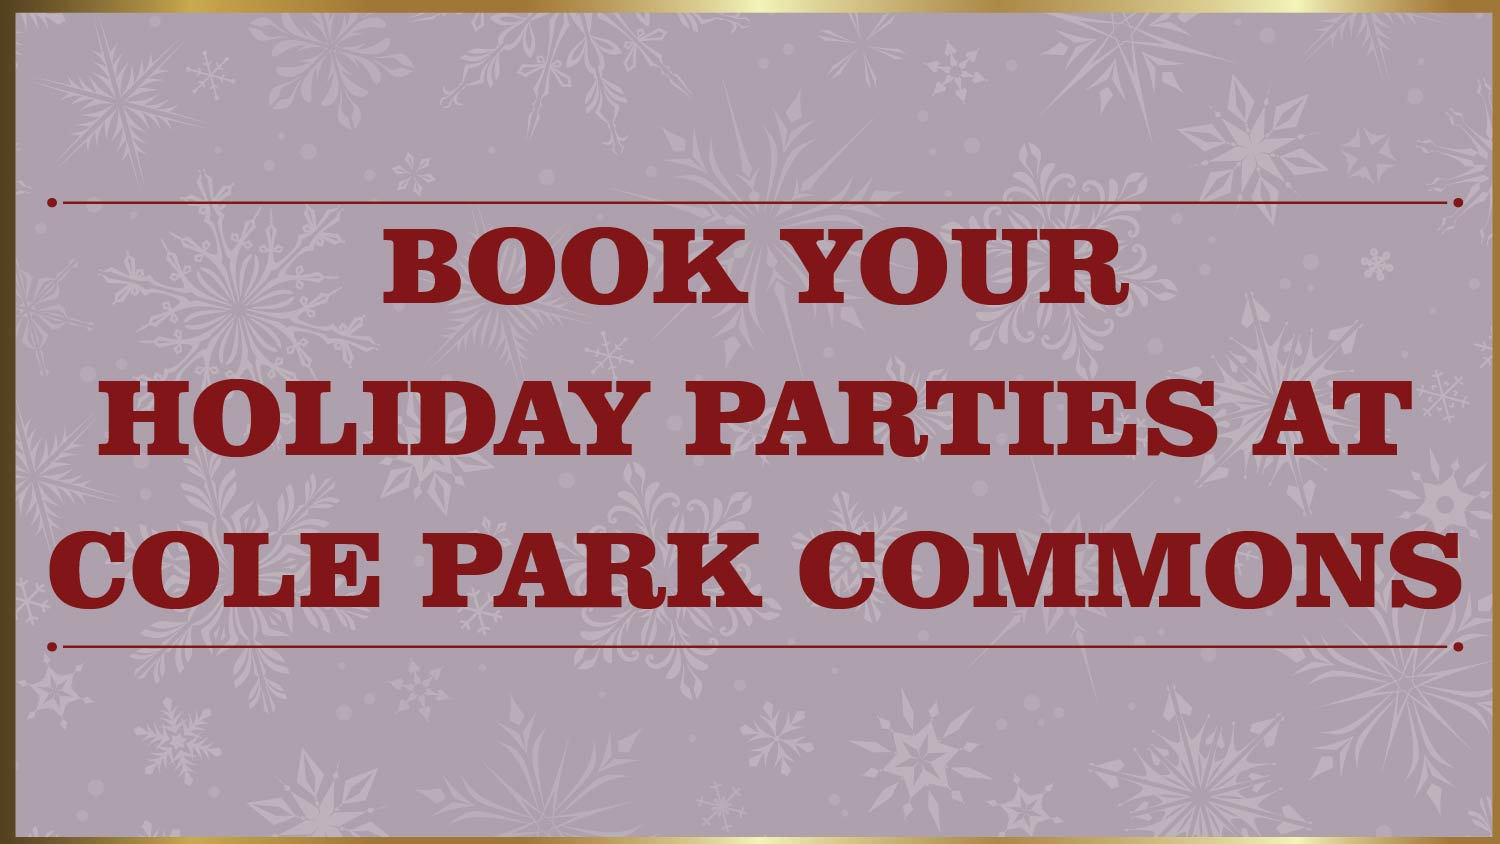 Cole Park Commons is Now Booking Holiday Parties!